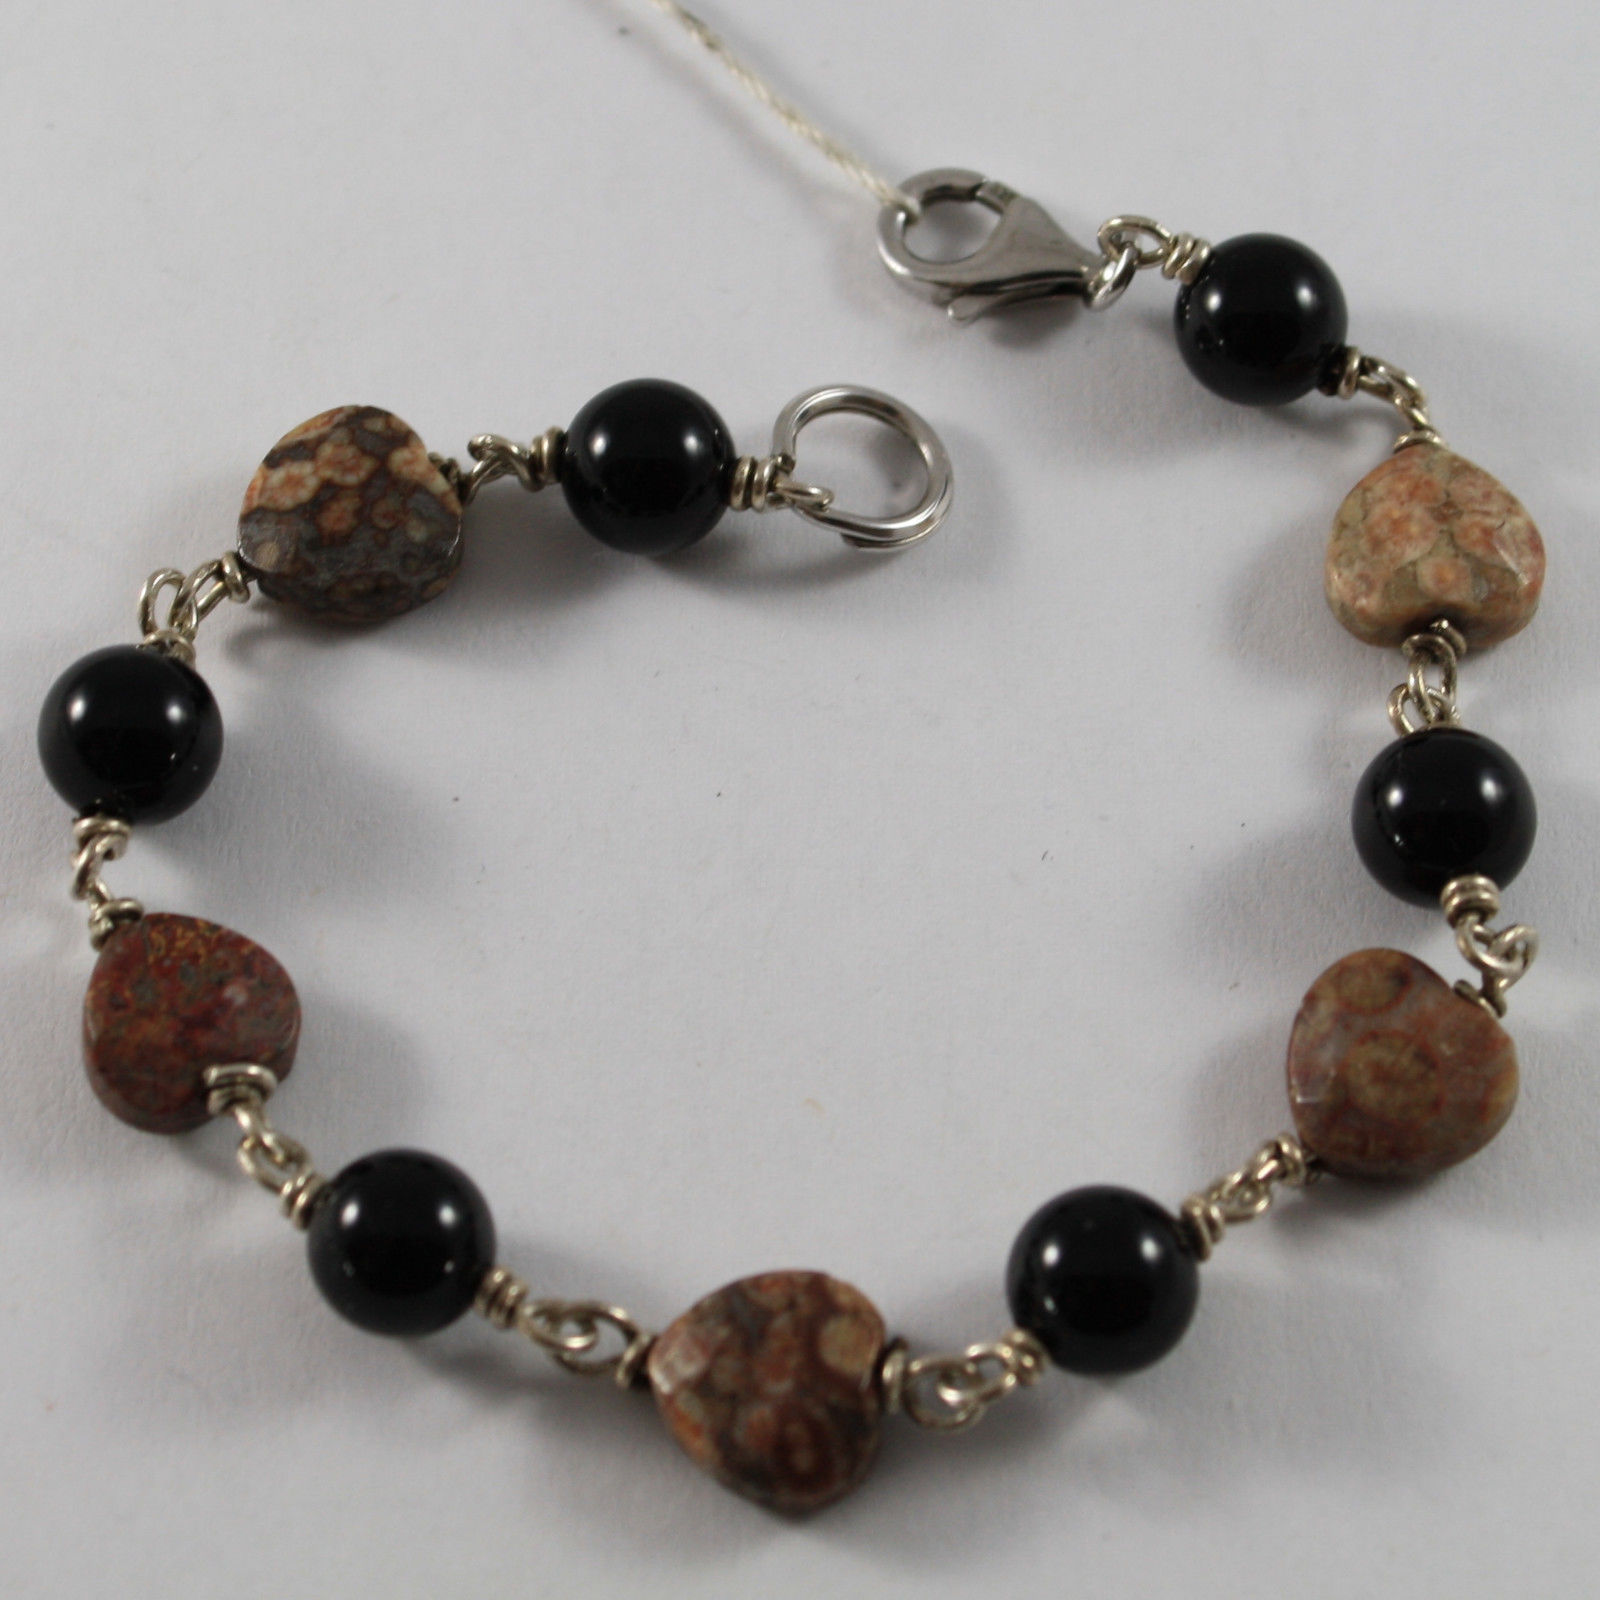 .925 RHODIUM SILVER BRACELET WITH BLACK ONYX AND HEARTS OF JASPER